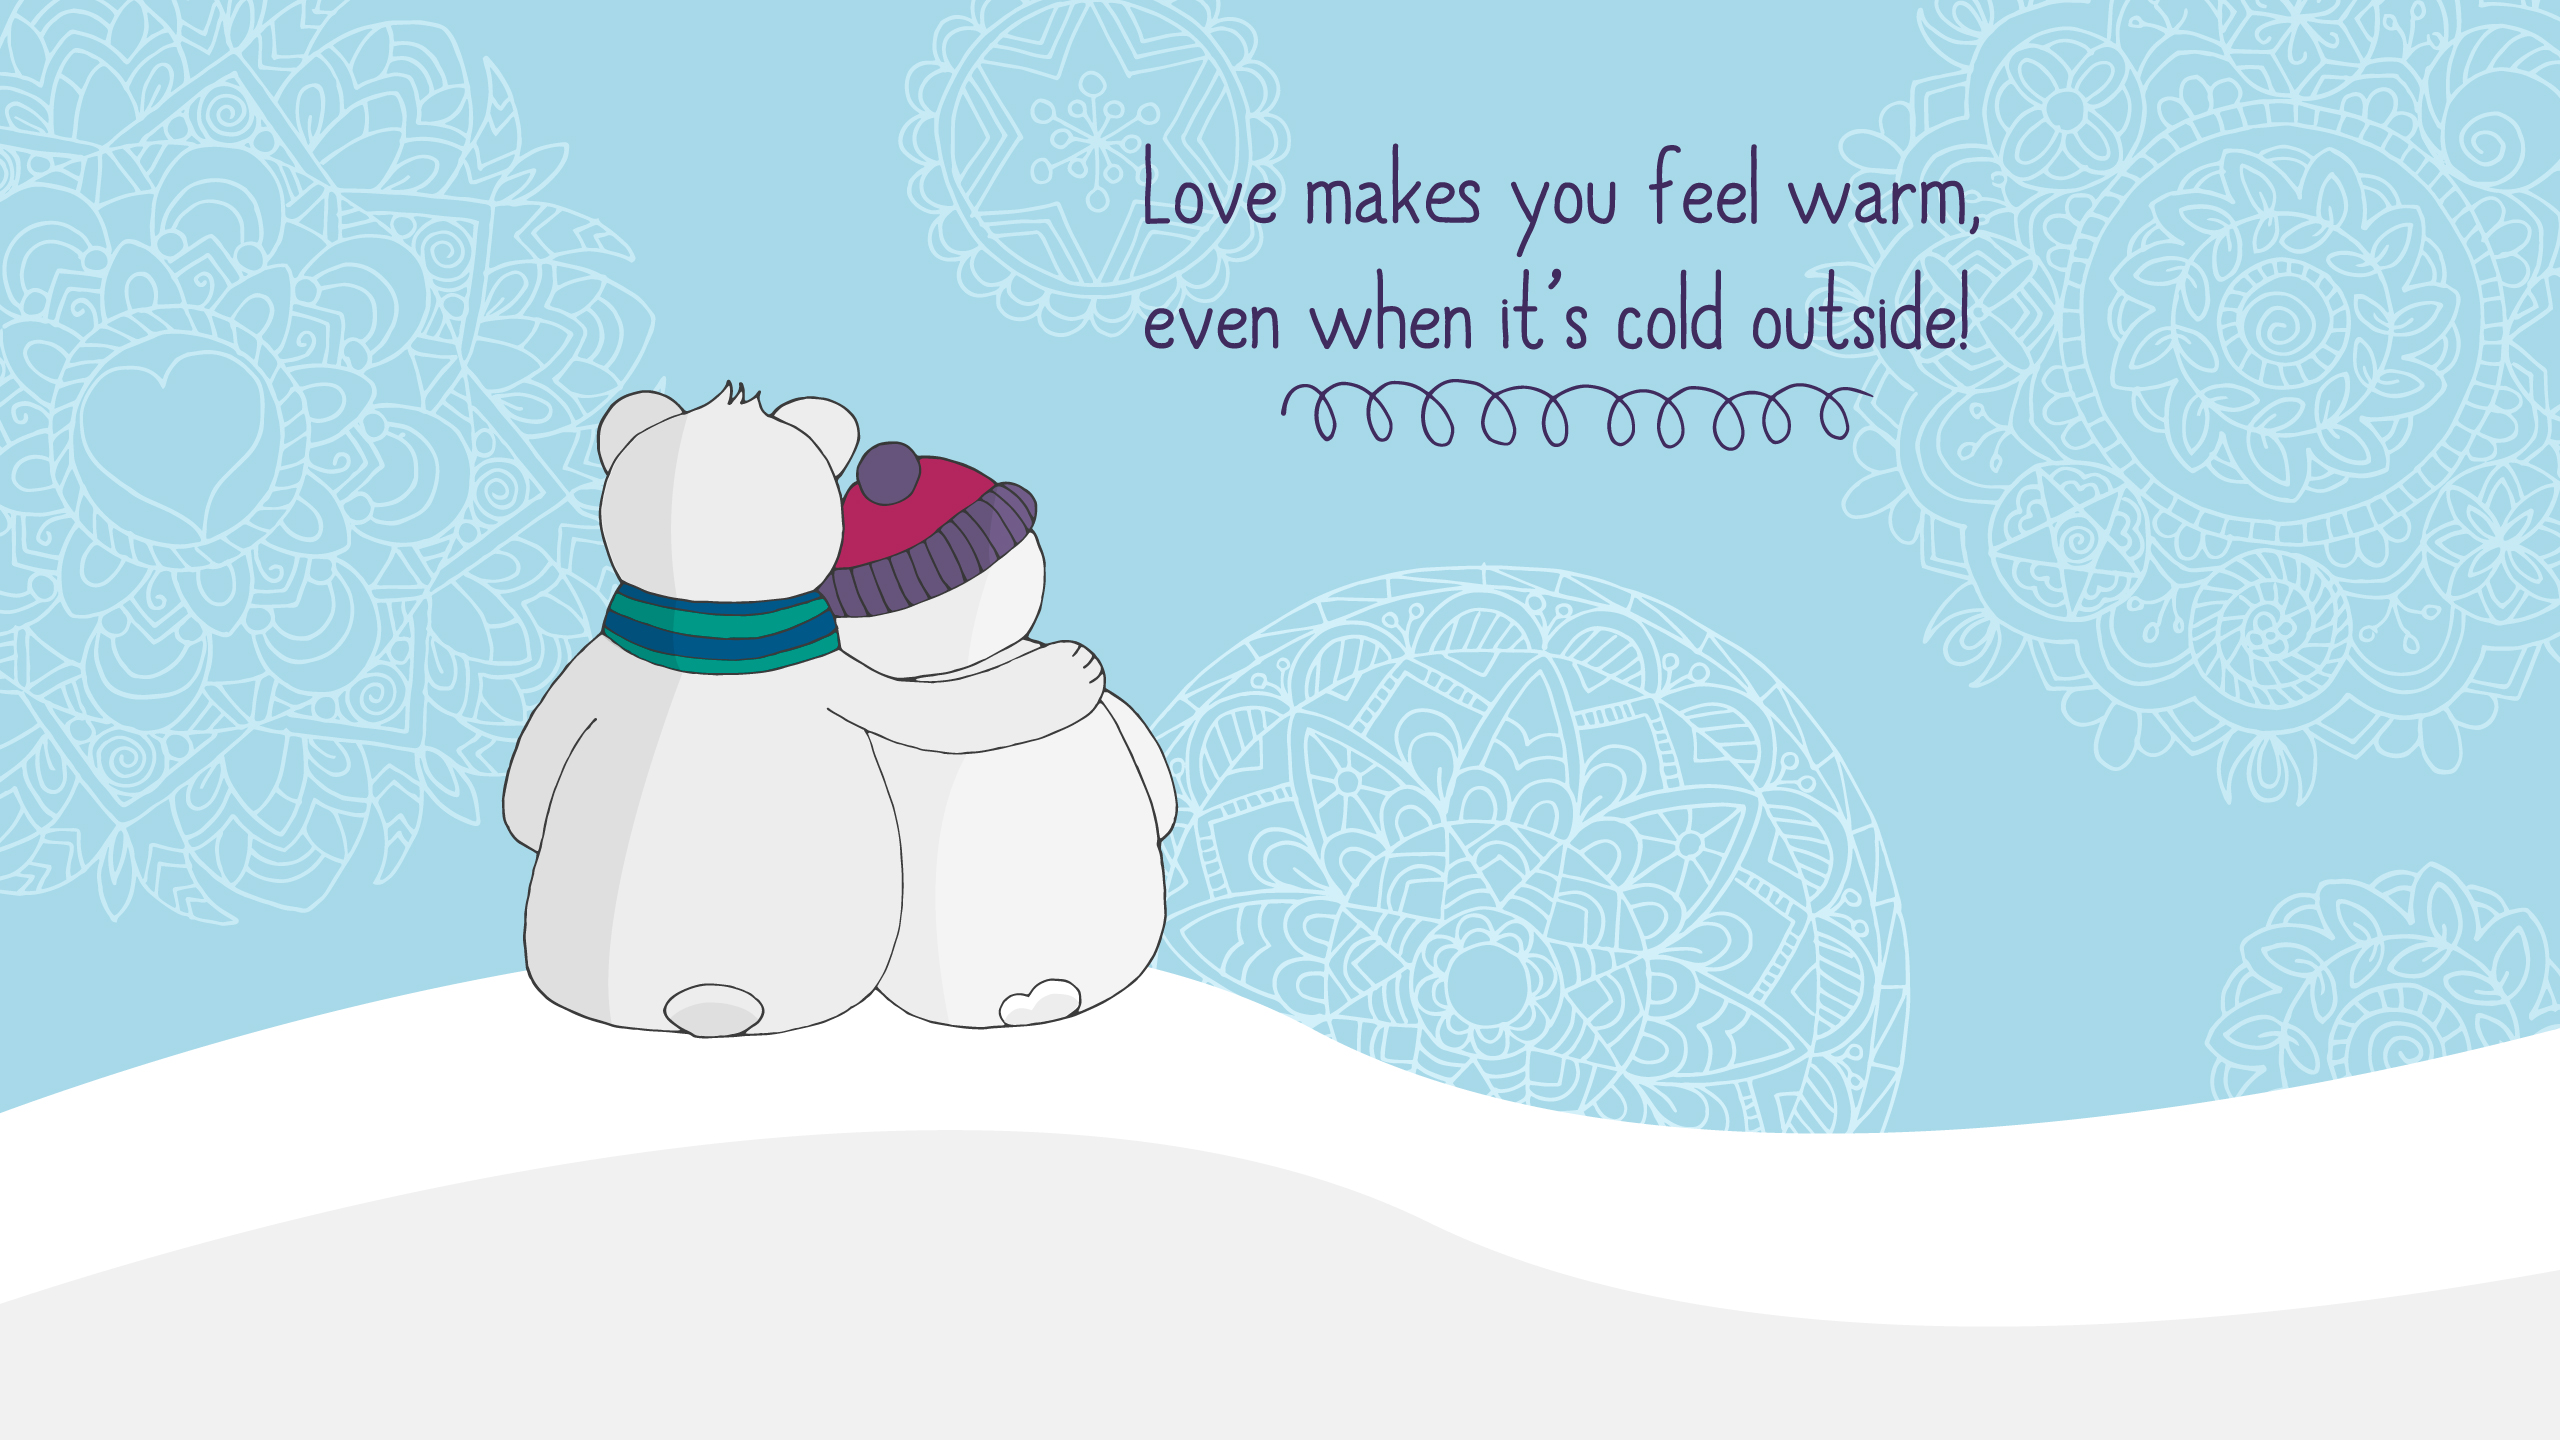 Love makes you warm Wallpapers